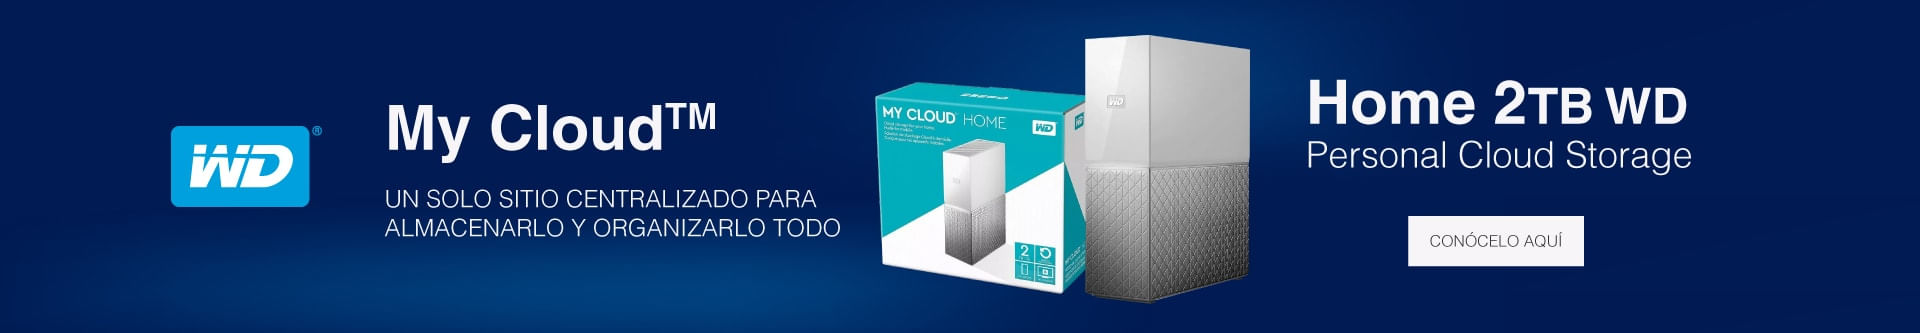 My Cloud Home 2TB WD Personal Cloud Storage